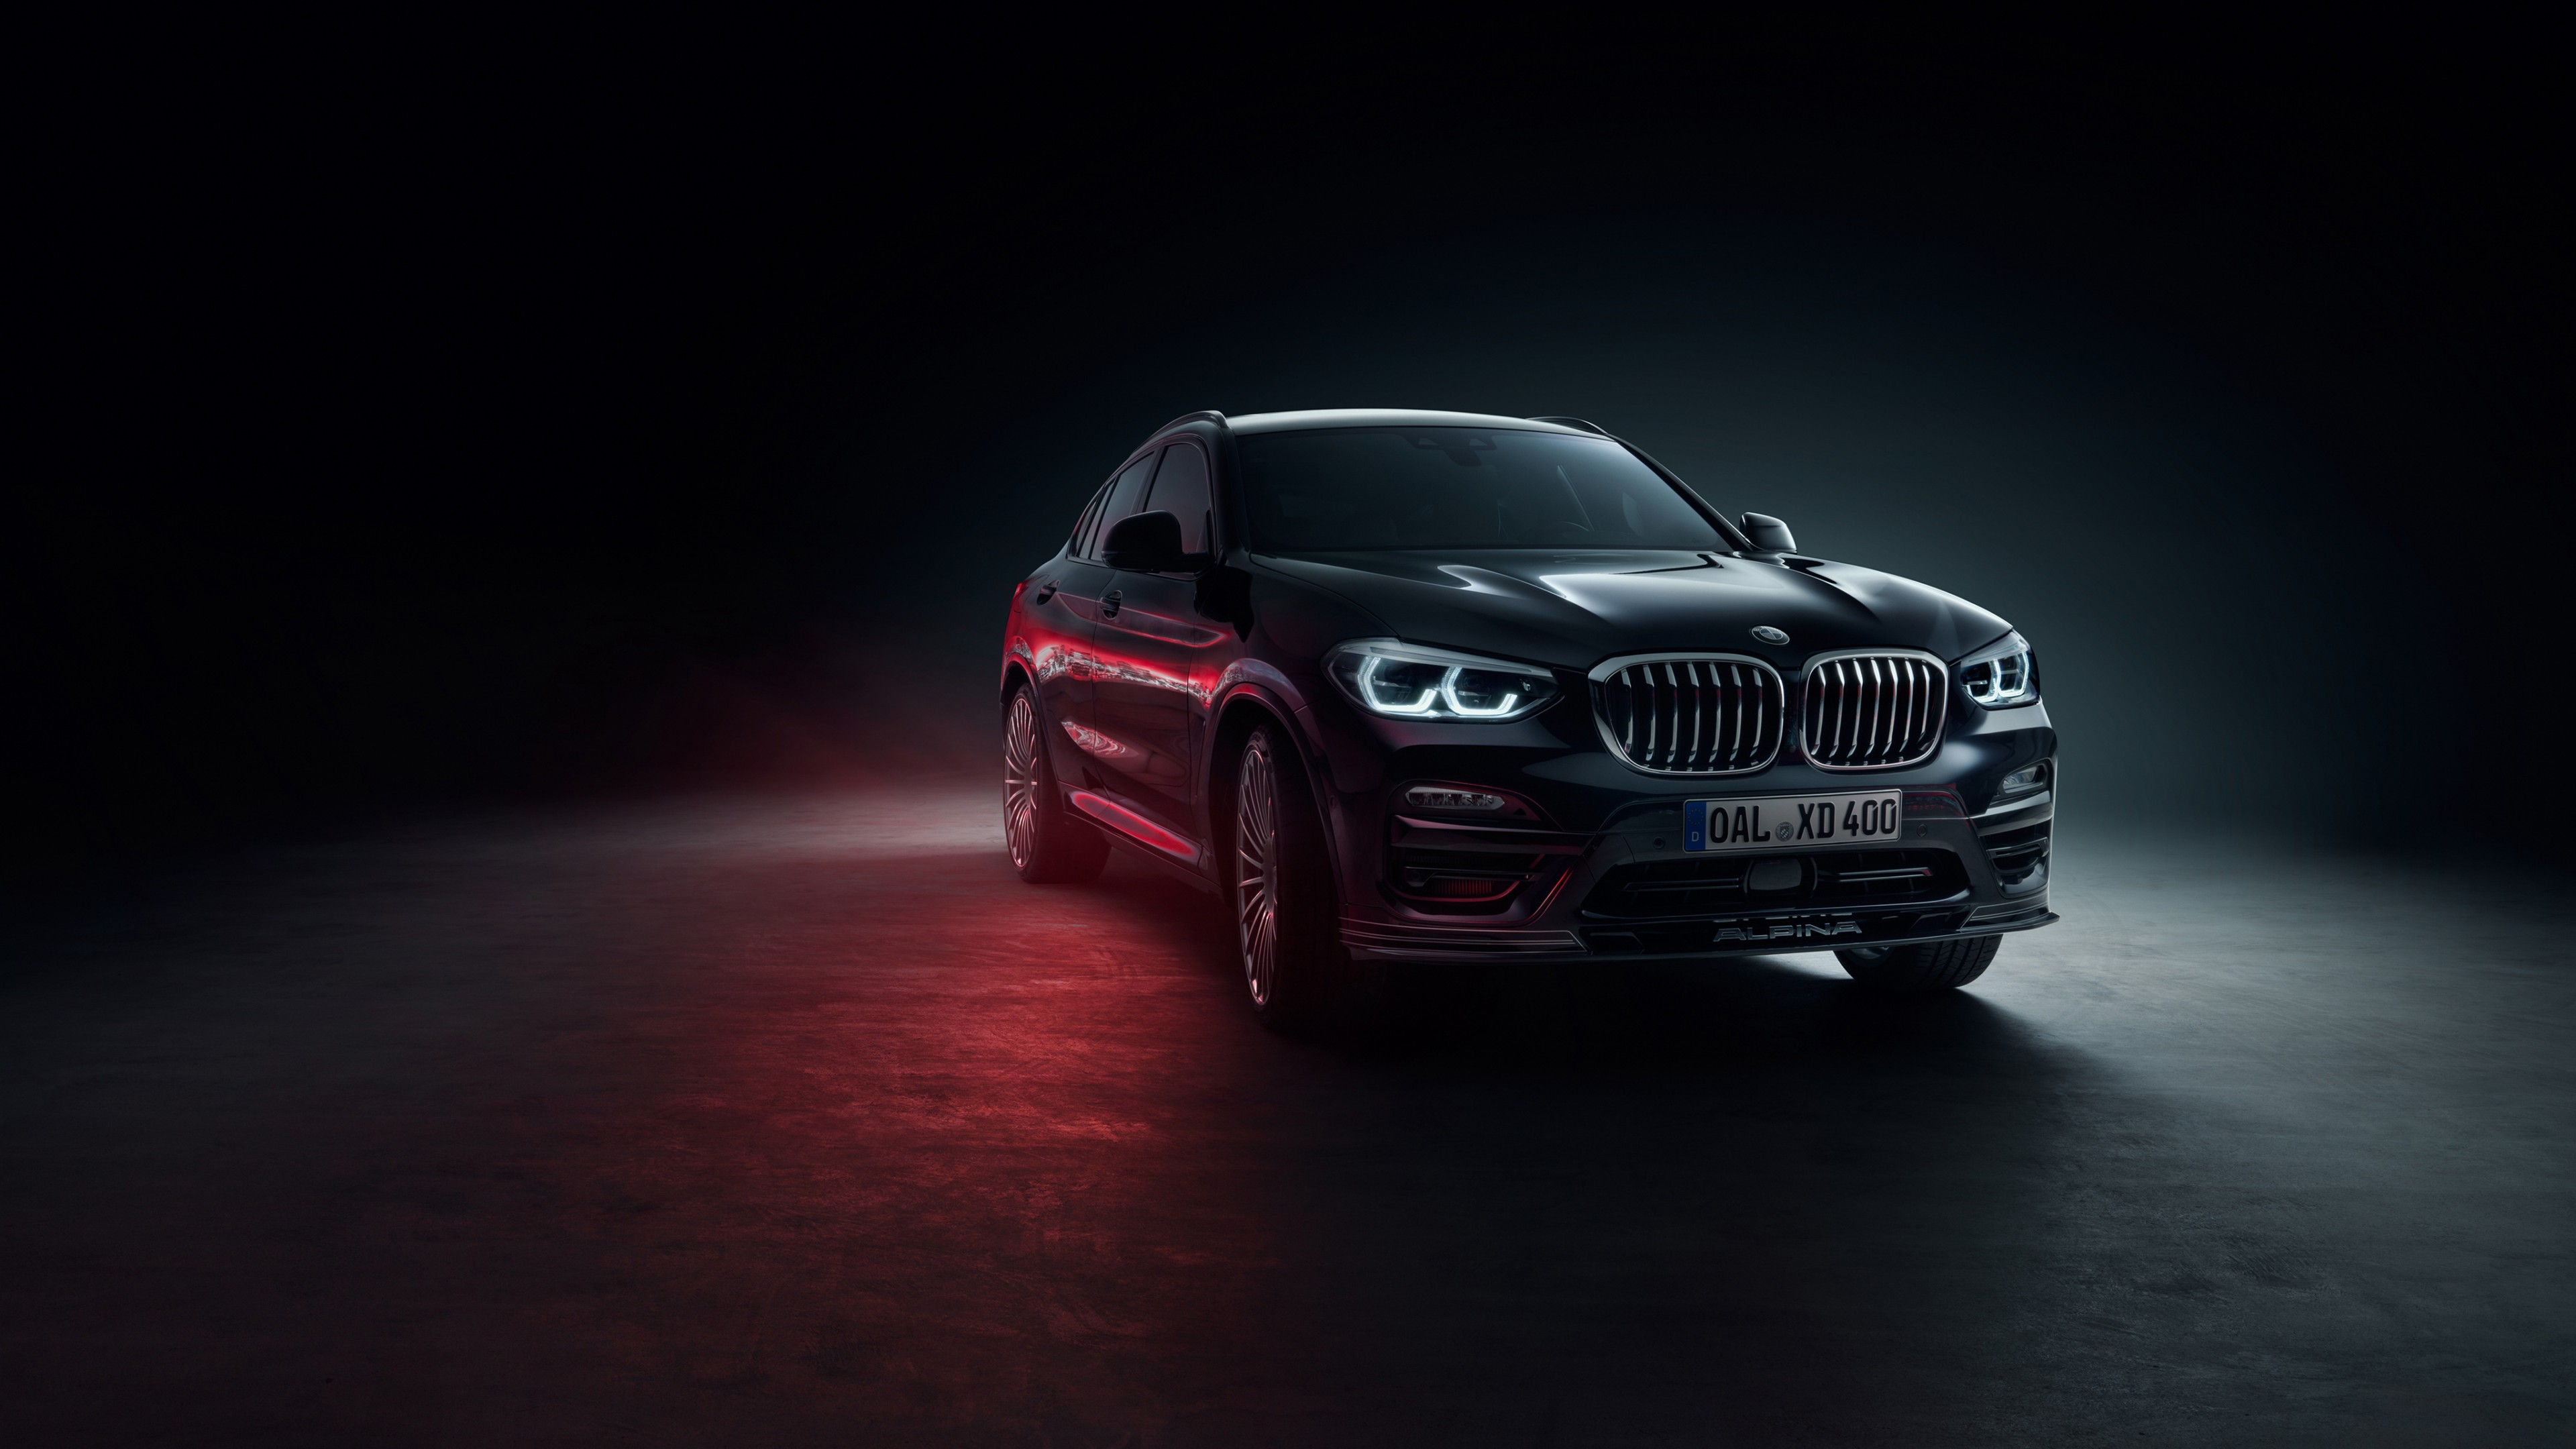 2018 Alpina Bmw Xd4 Allrad 4k 4 Wallpaper Hd Car